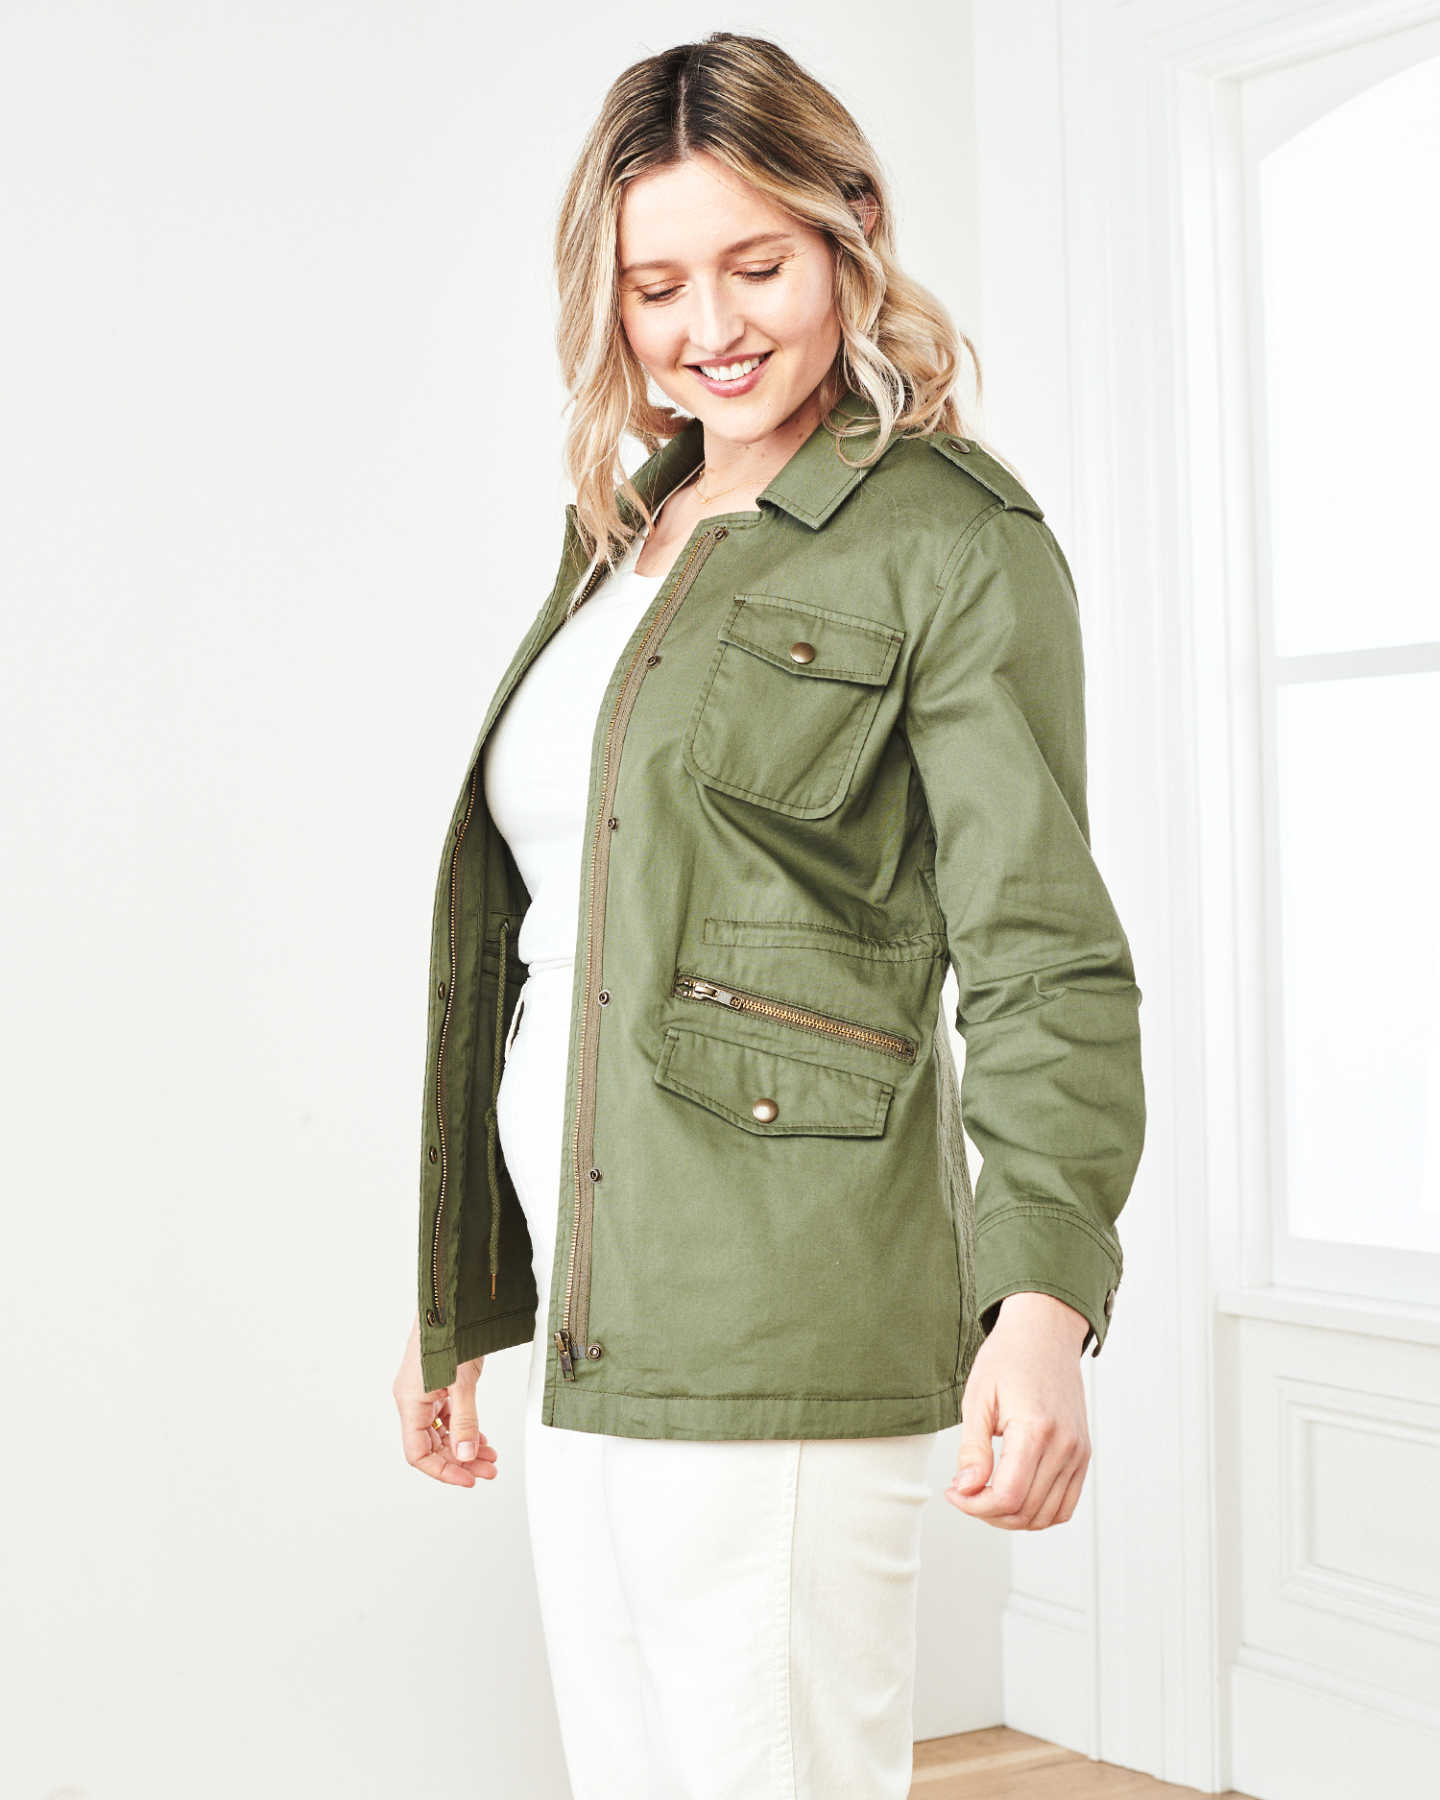 Cotton Twill Utility Jacket - Olive - 1